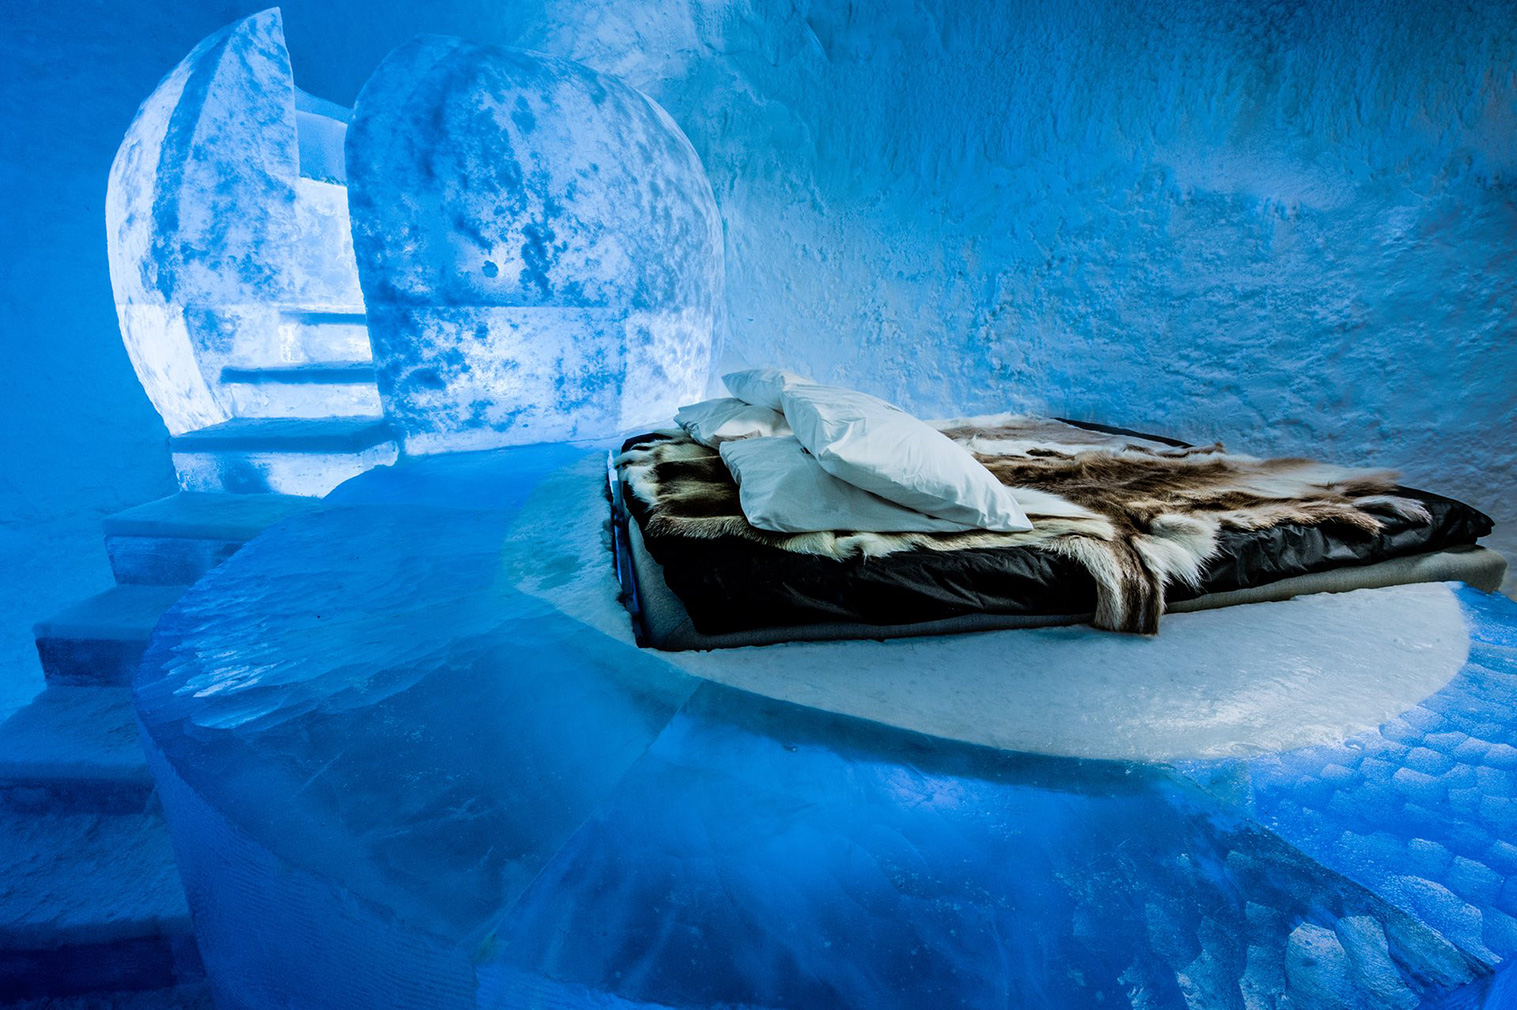 icehotel-365-4